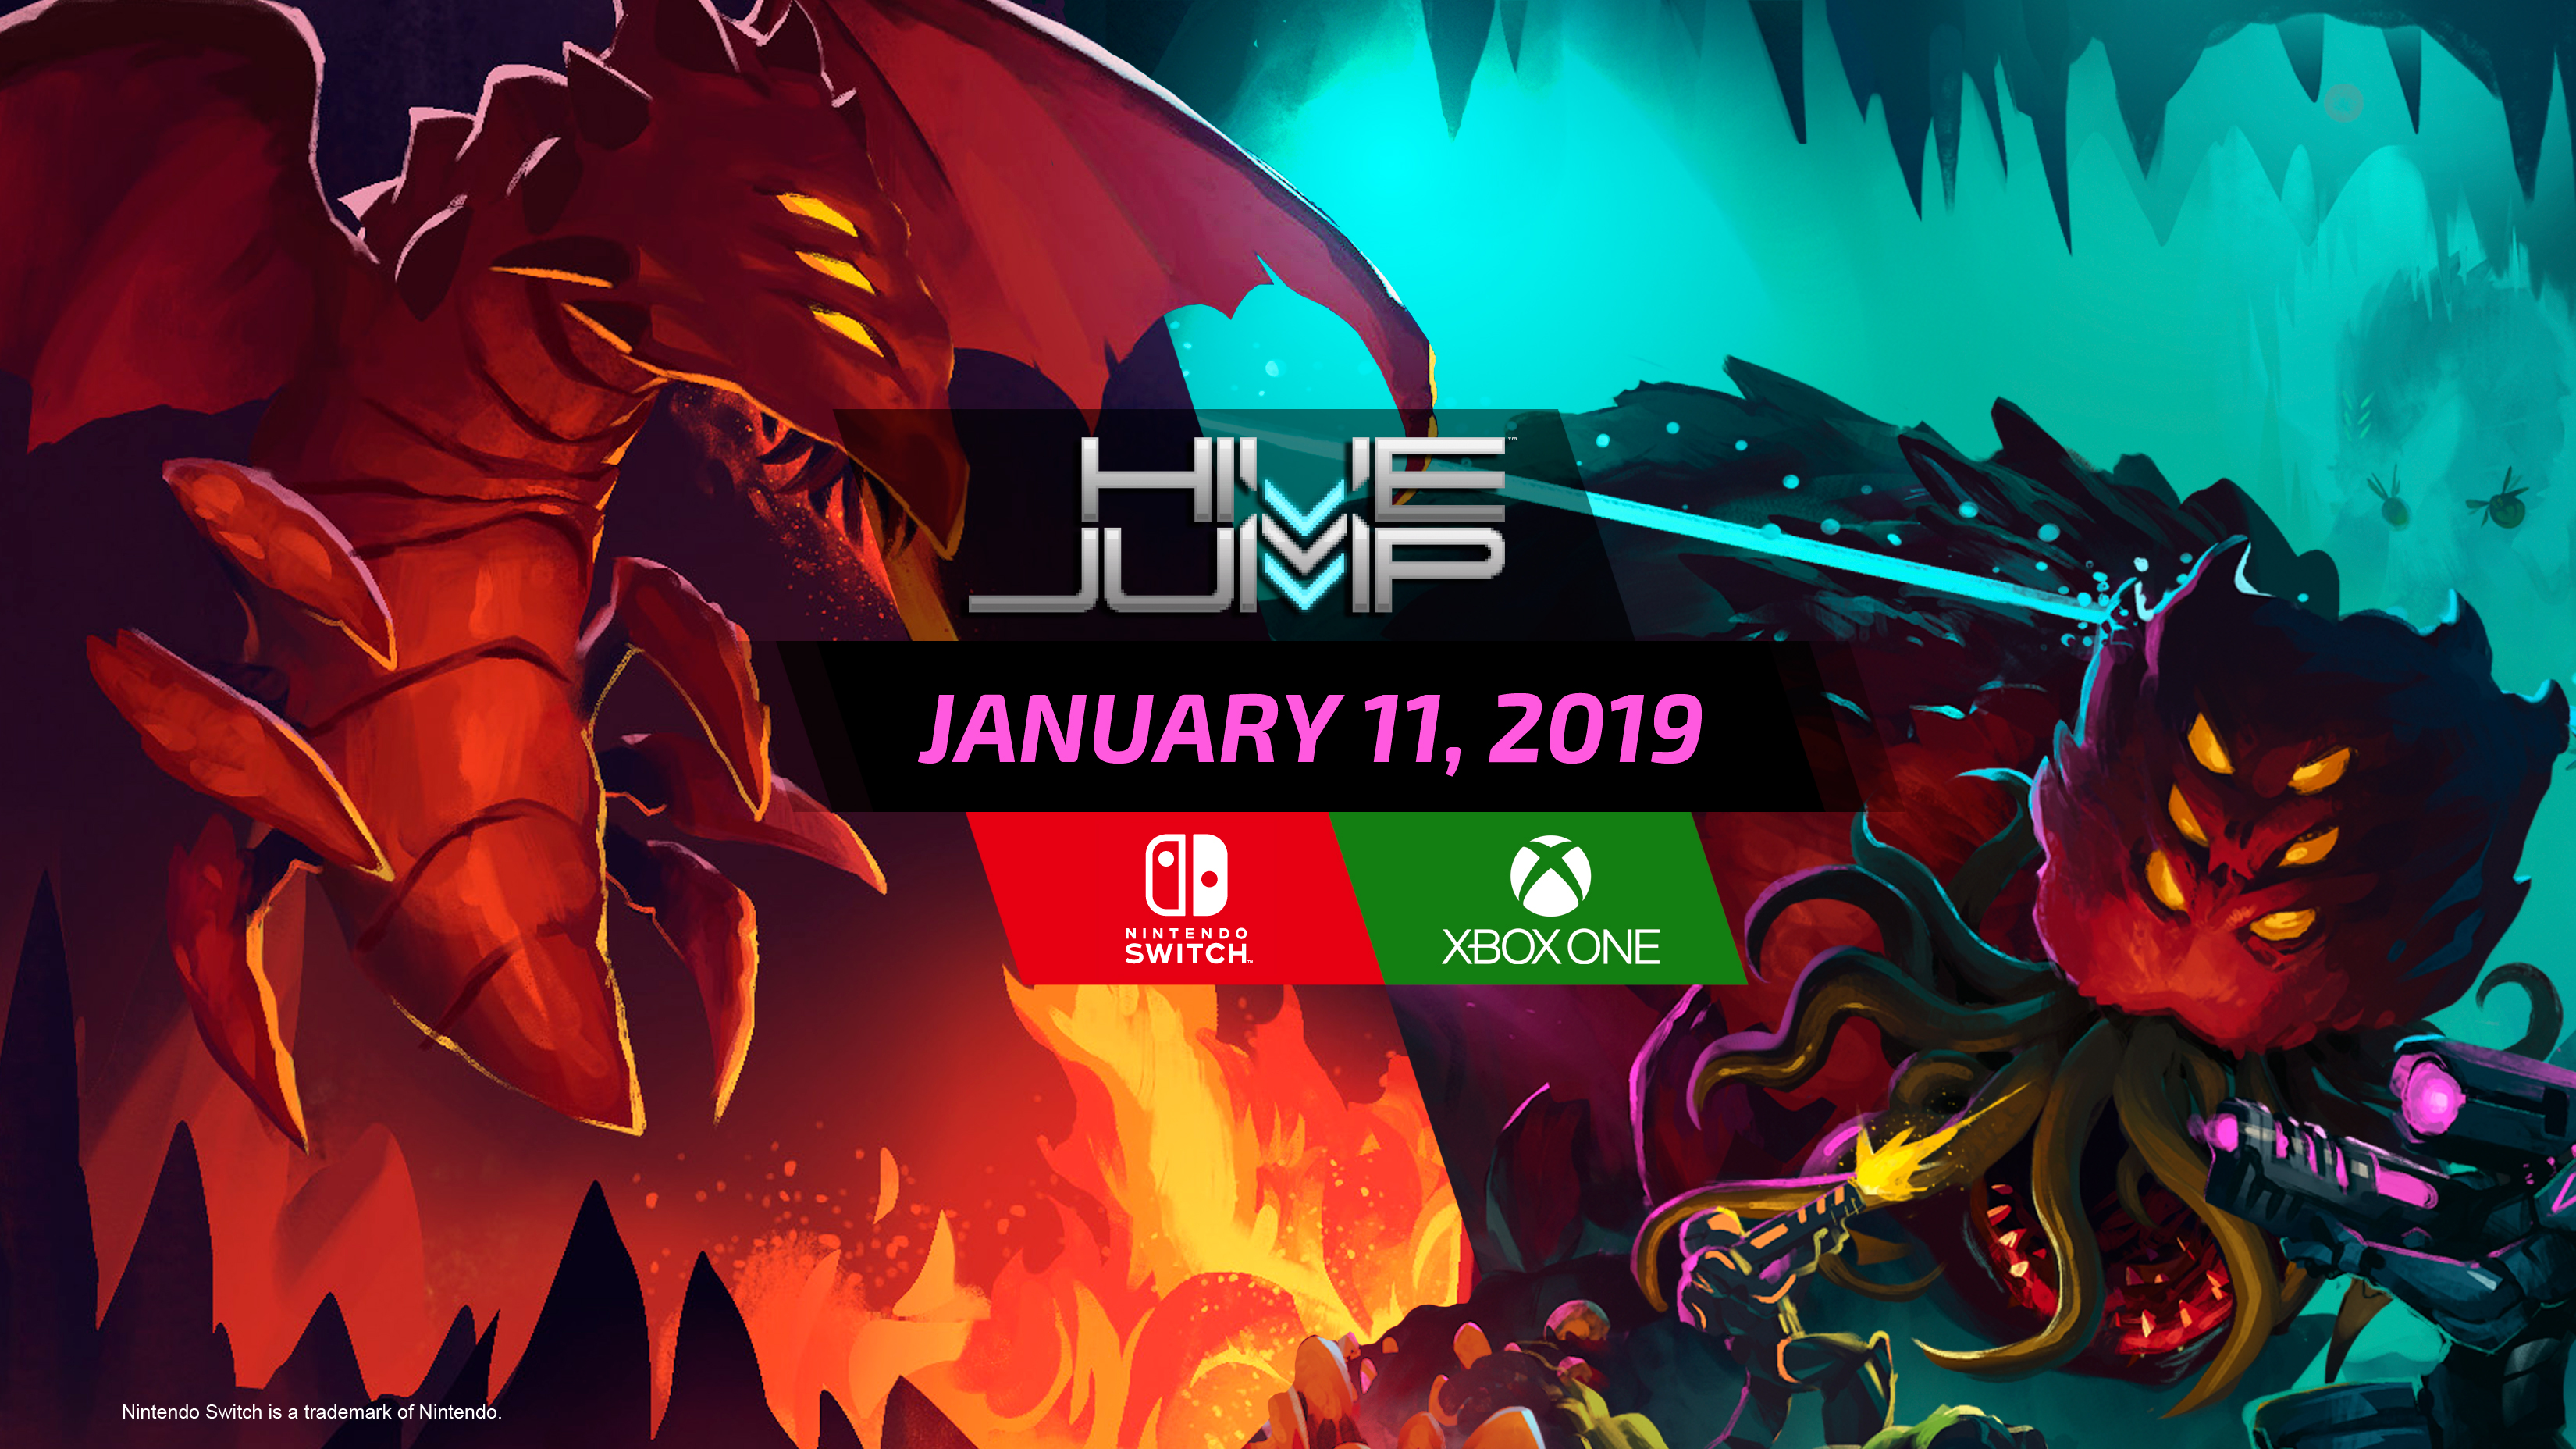 Hive Jump deploys on Nintendo Switch and XBOX One January 11, 2019